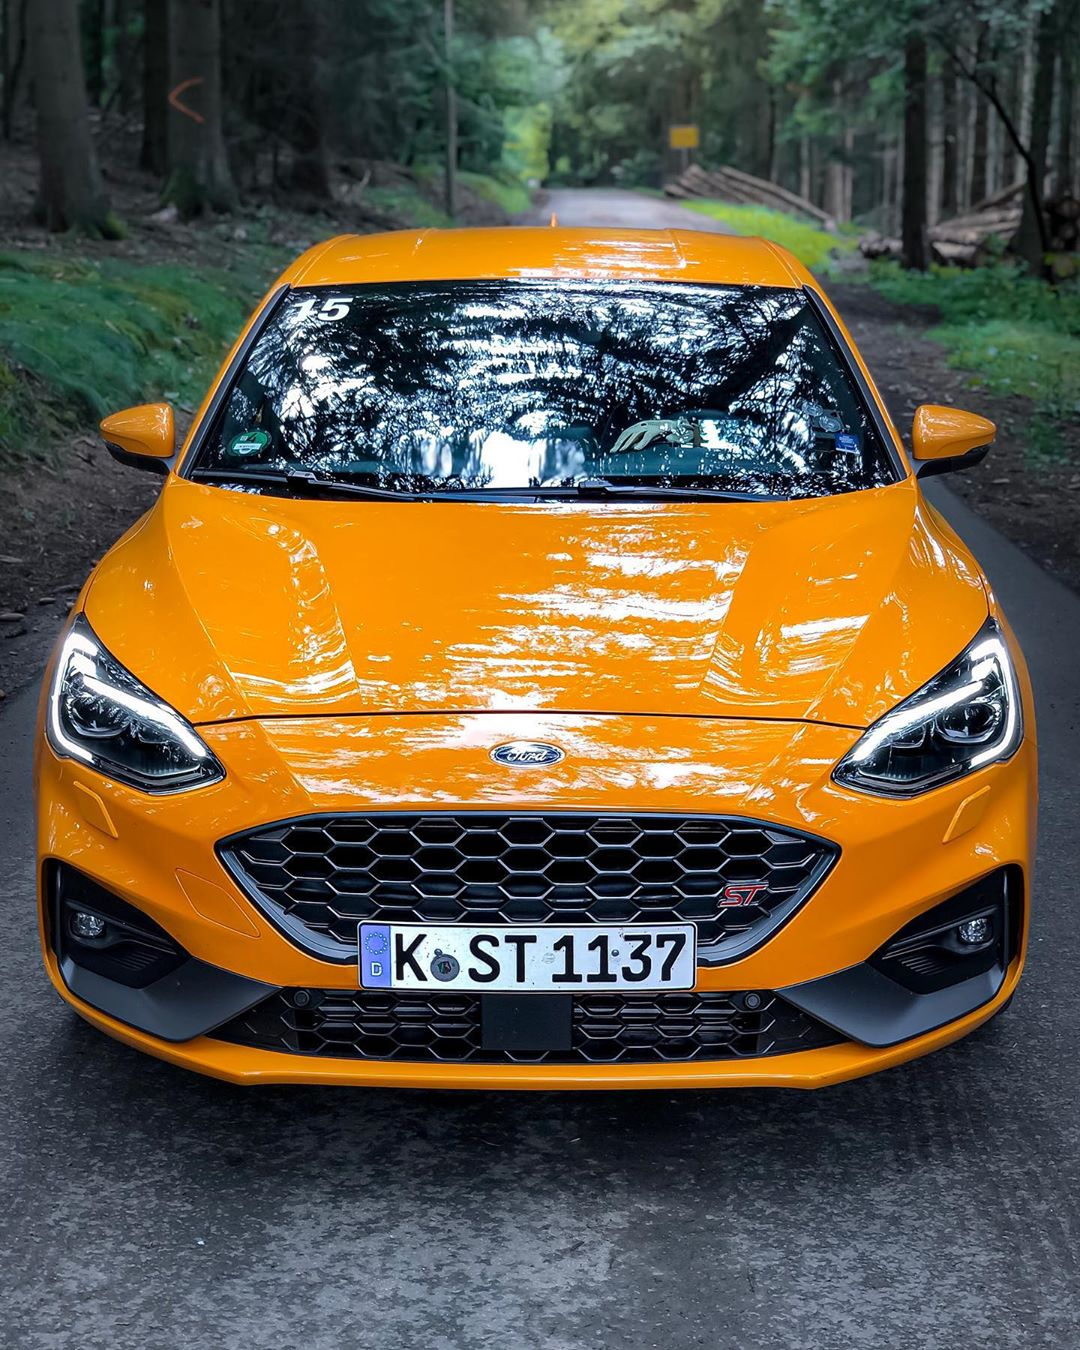 New FOCUS ST🤩😬…and guys: It SOUNDs amazing💥💥😱…awesome job @fordperformance and thanks to @forddeutschland for the car🤙 #fordperformance #fordfocusst #fordfocusstmk4 #focusst #focusstmk4 #fordcars #focusmk4st #automanntv #orangefury